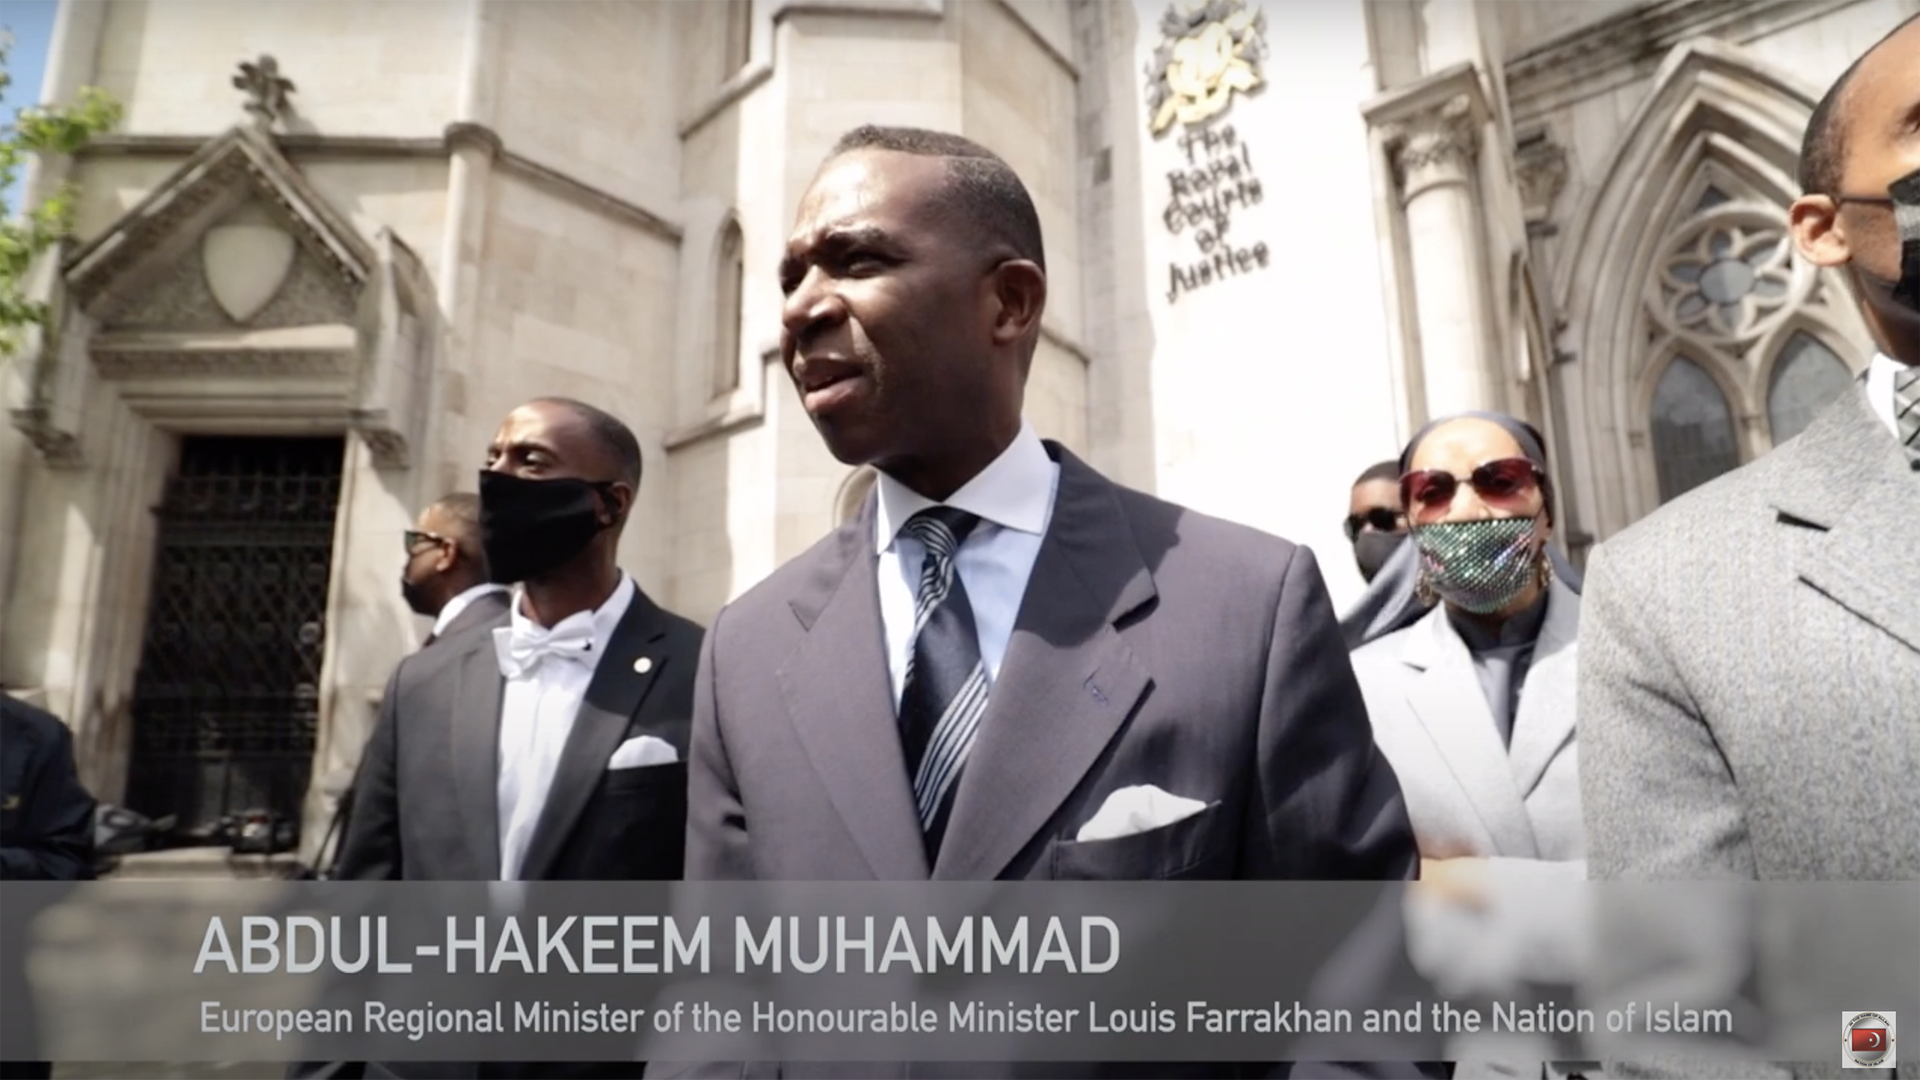 DEFENDING FARRAKHAN: Abdul Hakeem Muhammad and others -v- Lambeth Council and Metropolitan Police Service